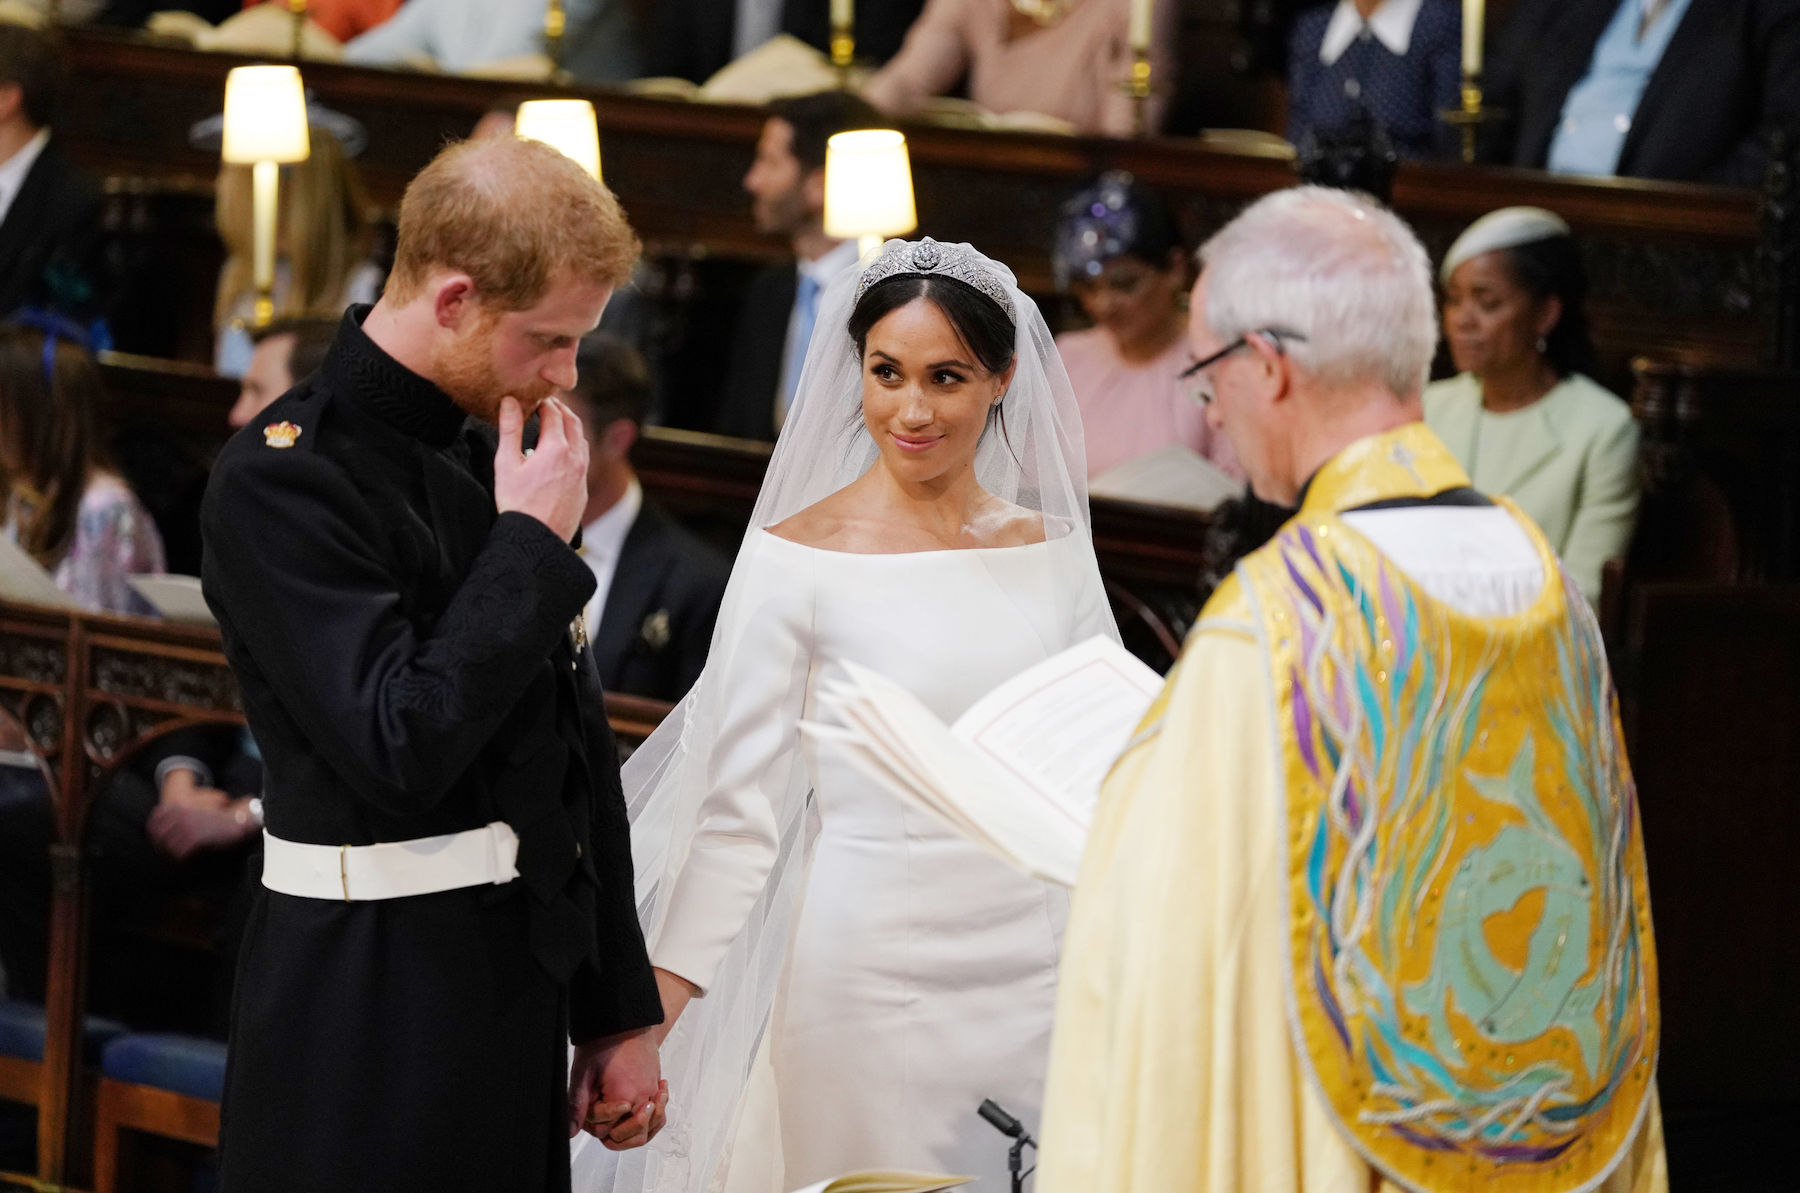 "<div class=""meta image-caption""><div class=""origin-logo origin-image kgo""><span>kgo</span></div><span class=""caption-text"">Prince Harry and Meghan Markle during their wedding service, conducted by the Archbishop of Canterbury Justin Welby in St George's Chapel. (WPA Pool/Getty Images)</span></div>"